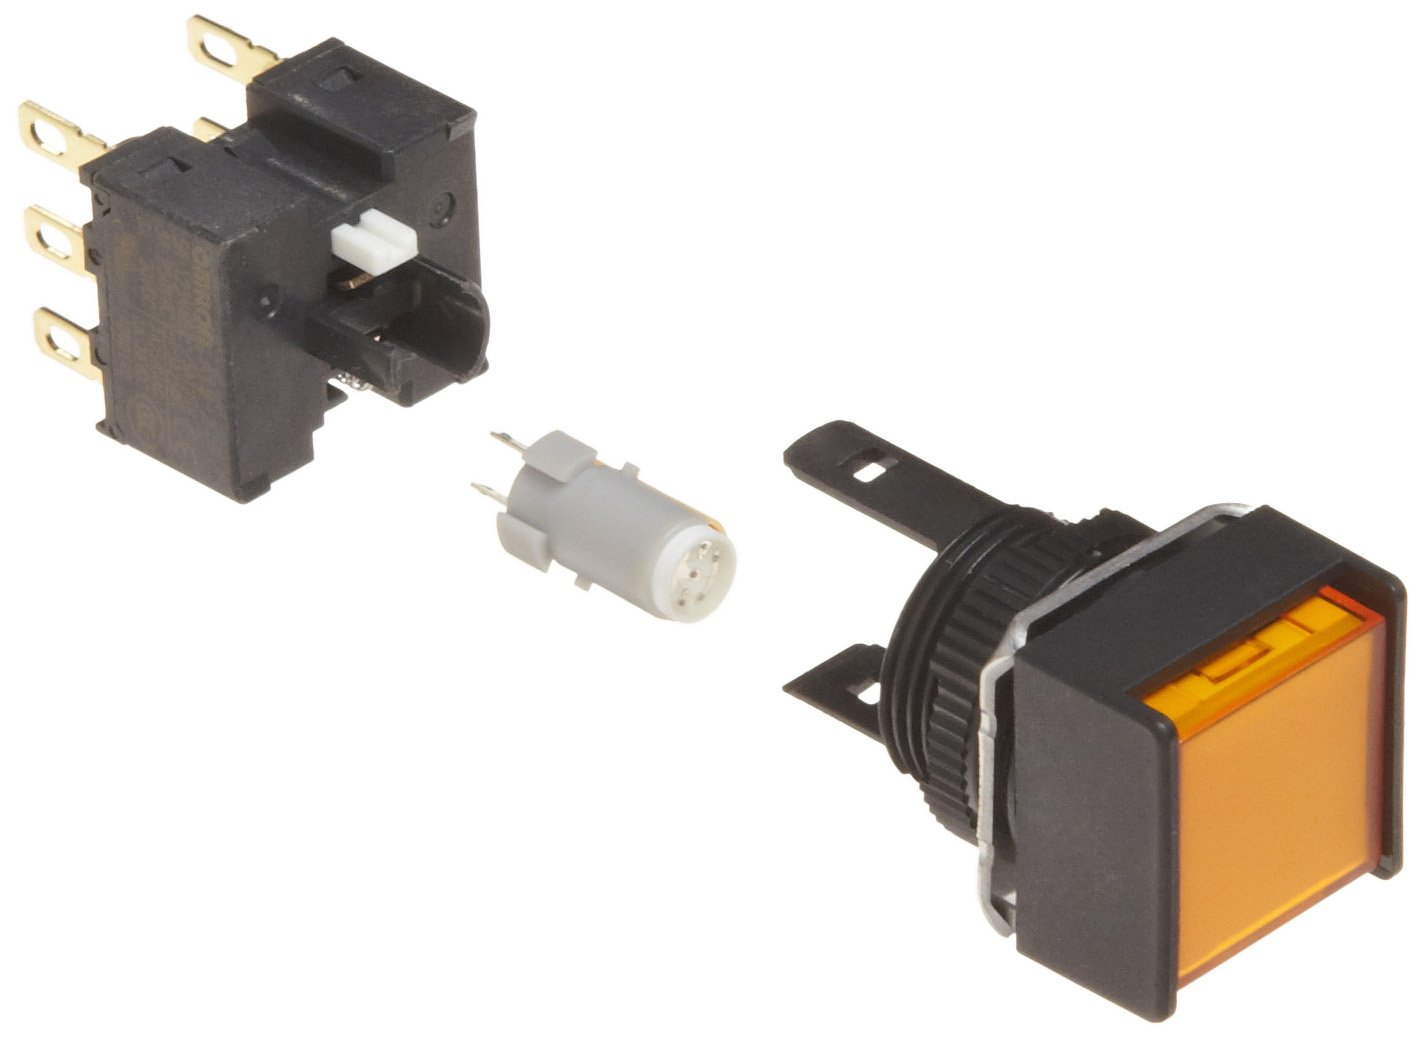 Omron A165L-AYA-24D-2 Two Way Guard Type Pushbutton and Switch, Solder Terminal, IP65 Oil-Resistant, 16mm Mounting Aperture, LED Lighted, Alternate Operation, Square, Yellow, 24 VDC Rated Voltage, Double Pole Double Throw Contacts